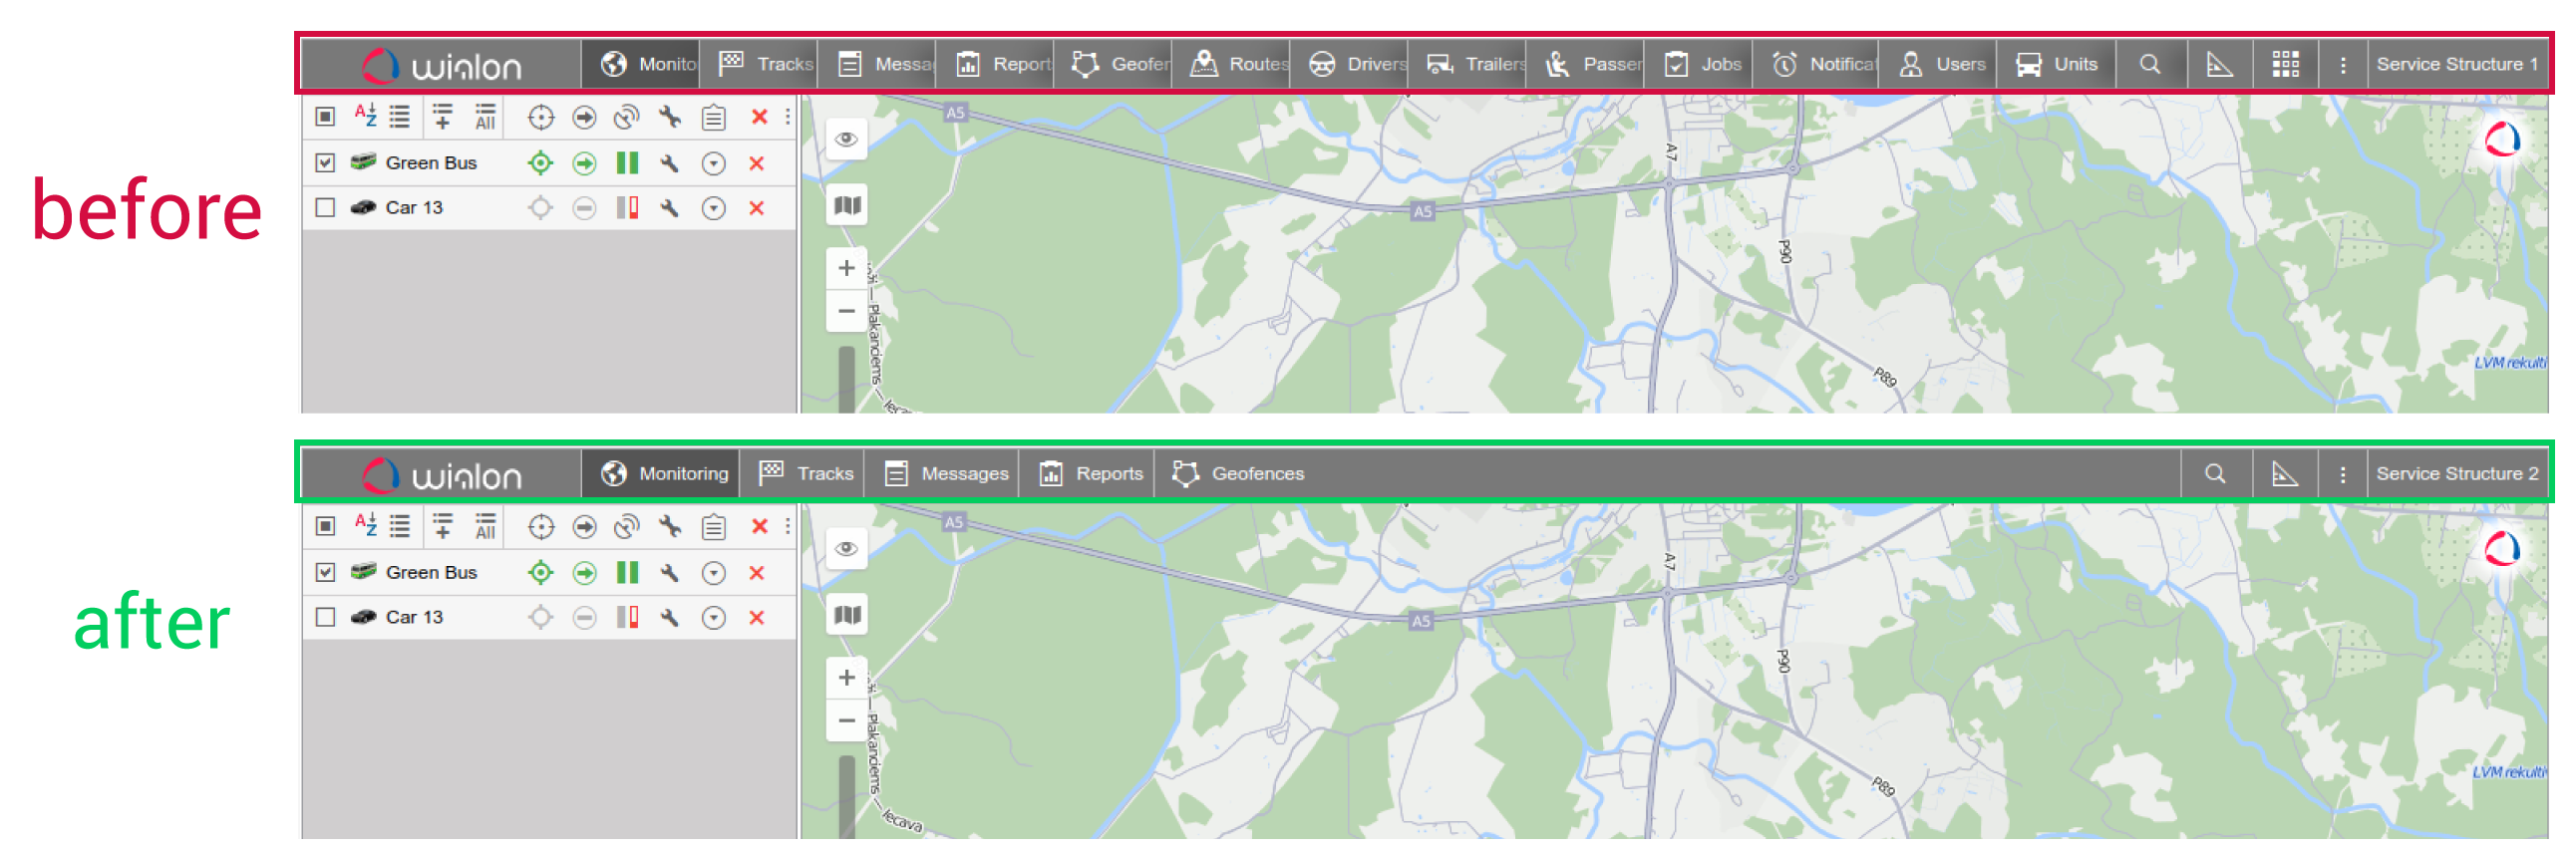 two versions of monitoring